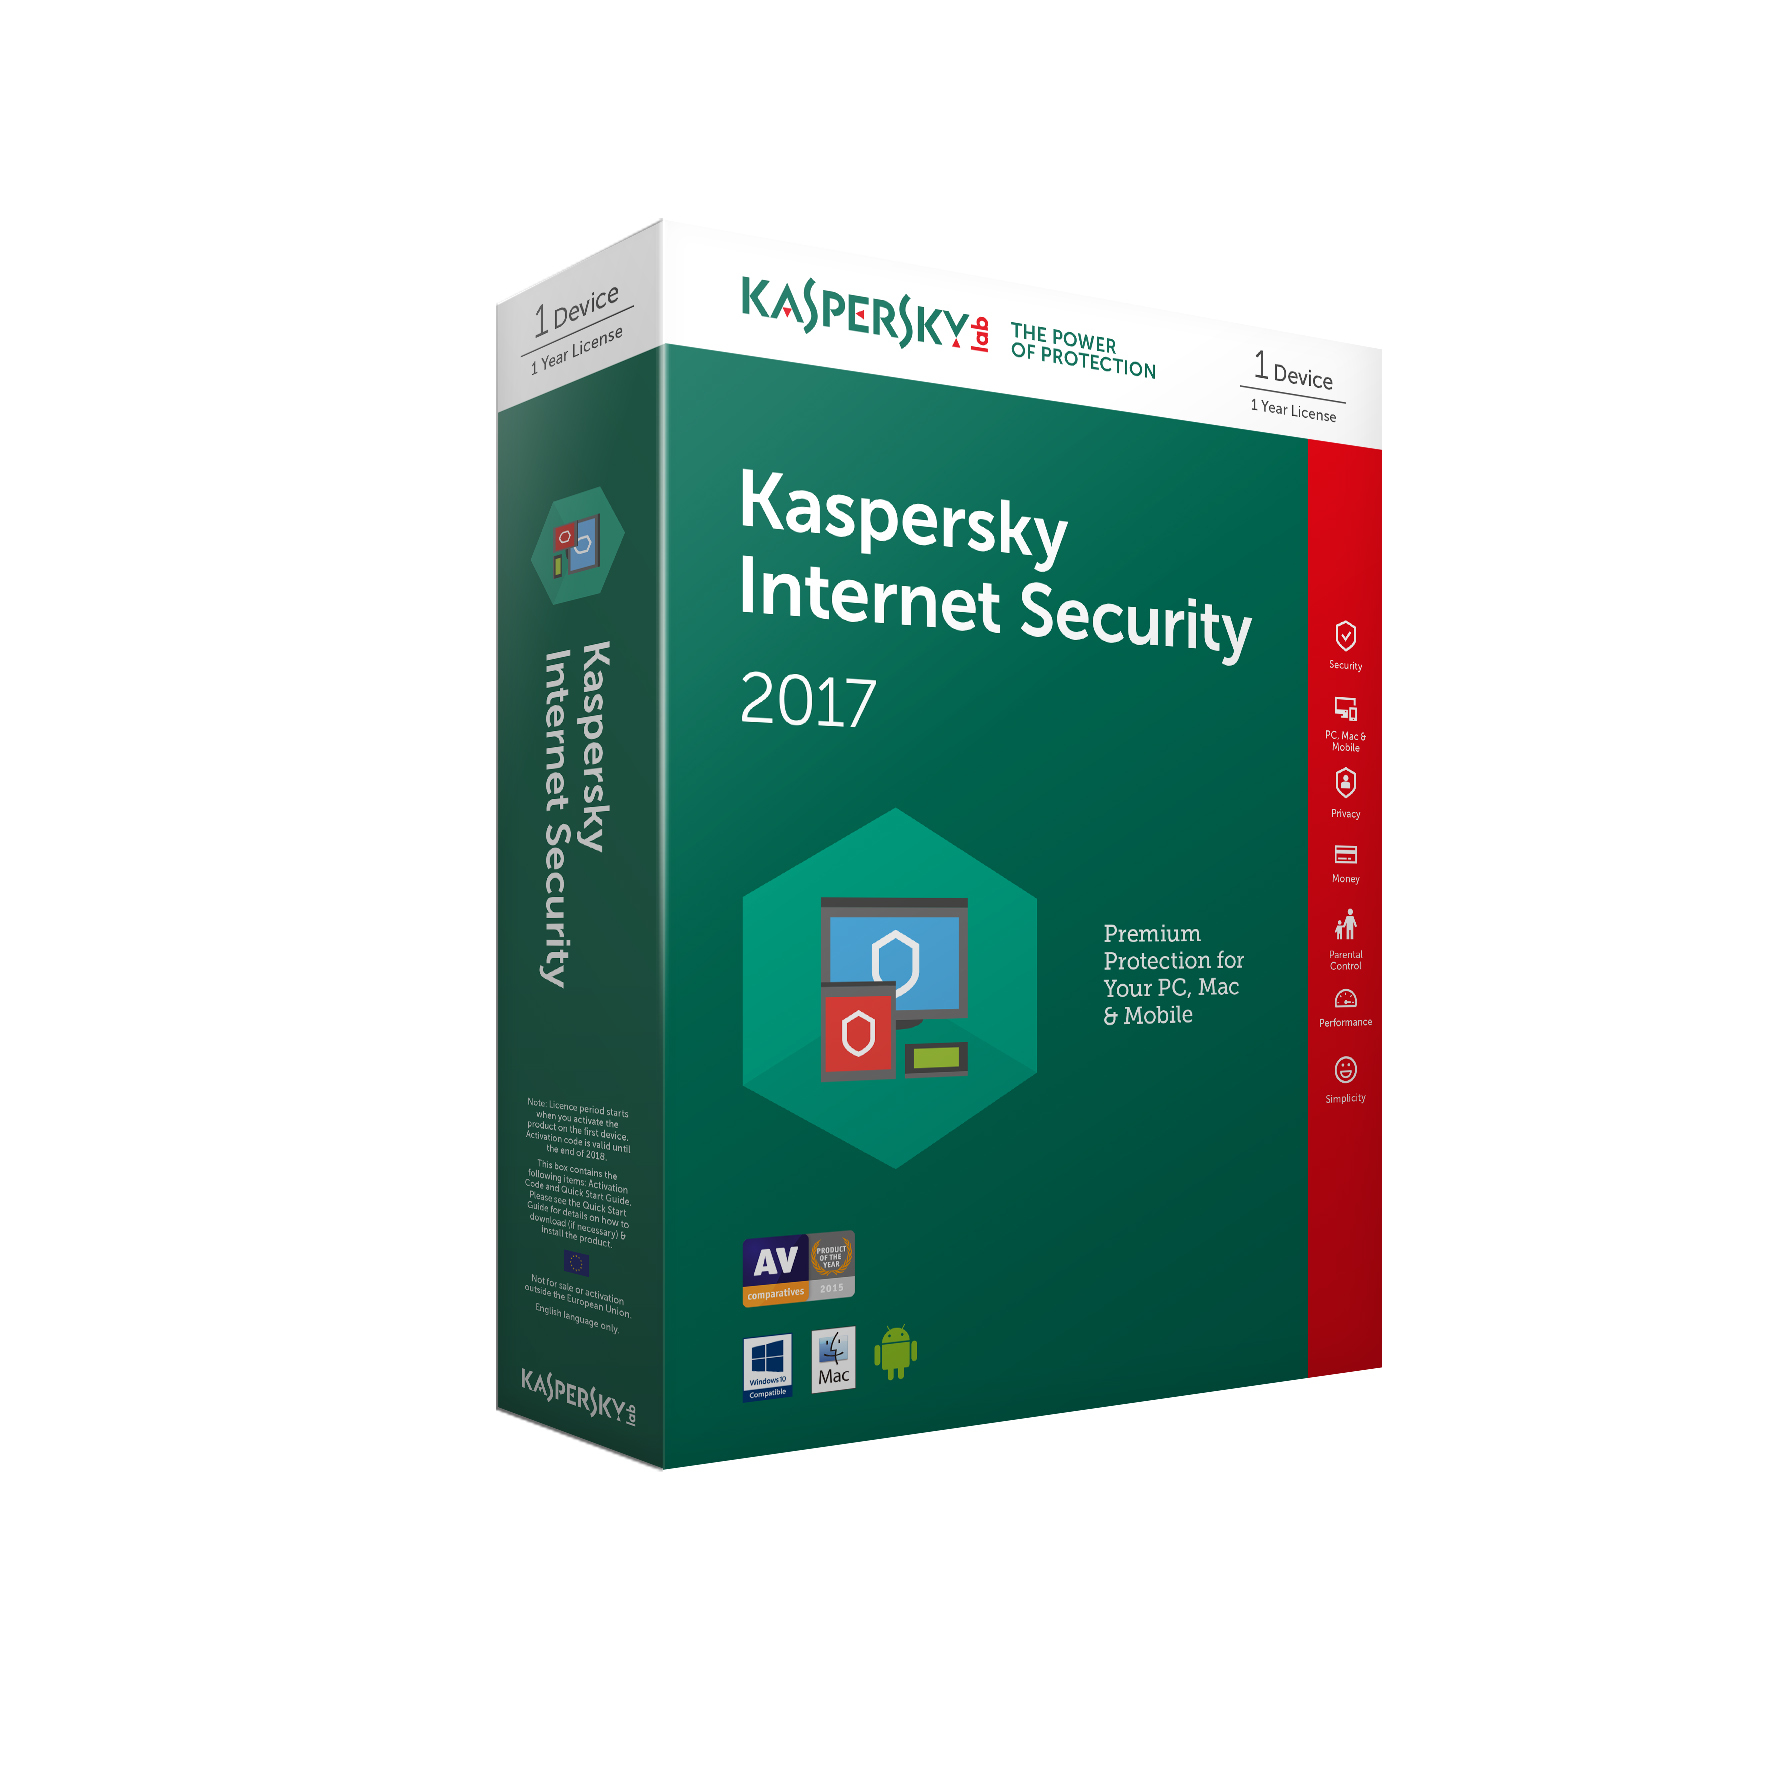 Kaspersky Lab Kaspersky Internet Security 2017 - 1 Devices 1 Year (Standard Packaging)